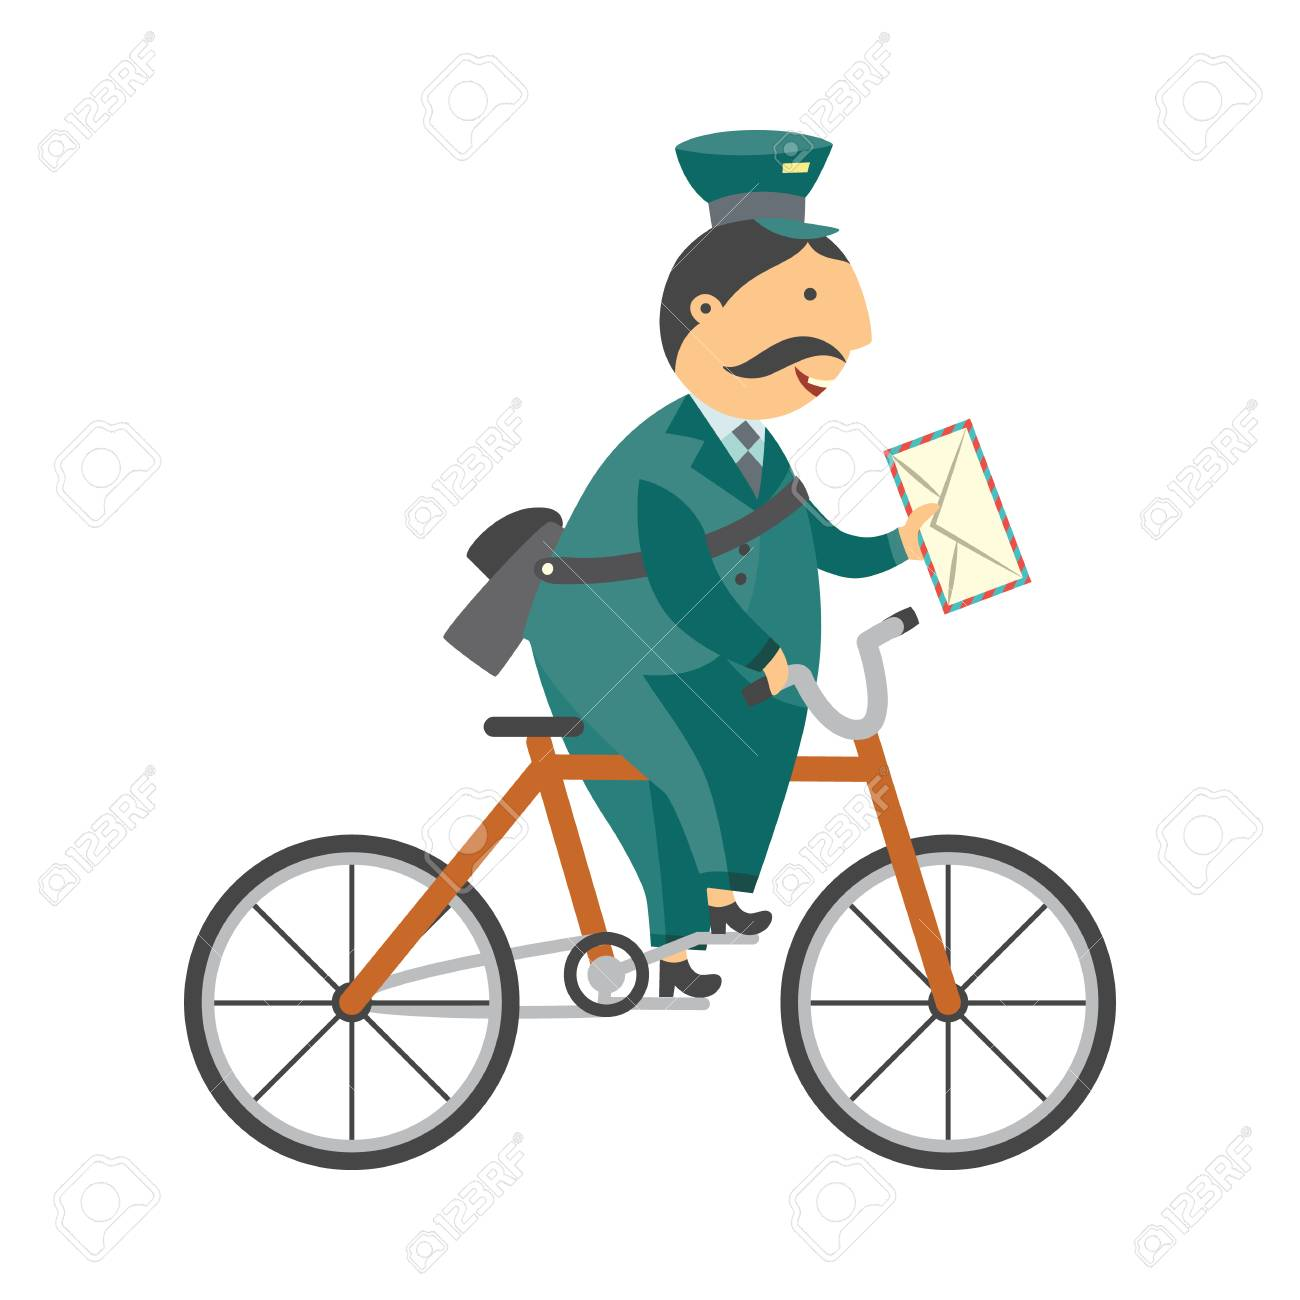 Cartoon postman cheerful character standing delivering parcel box by bicycle. Man in professional green uniform peaked cap. Delivery service worker, mailman. Vector illustration - 114865465